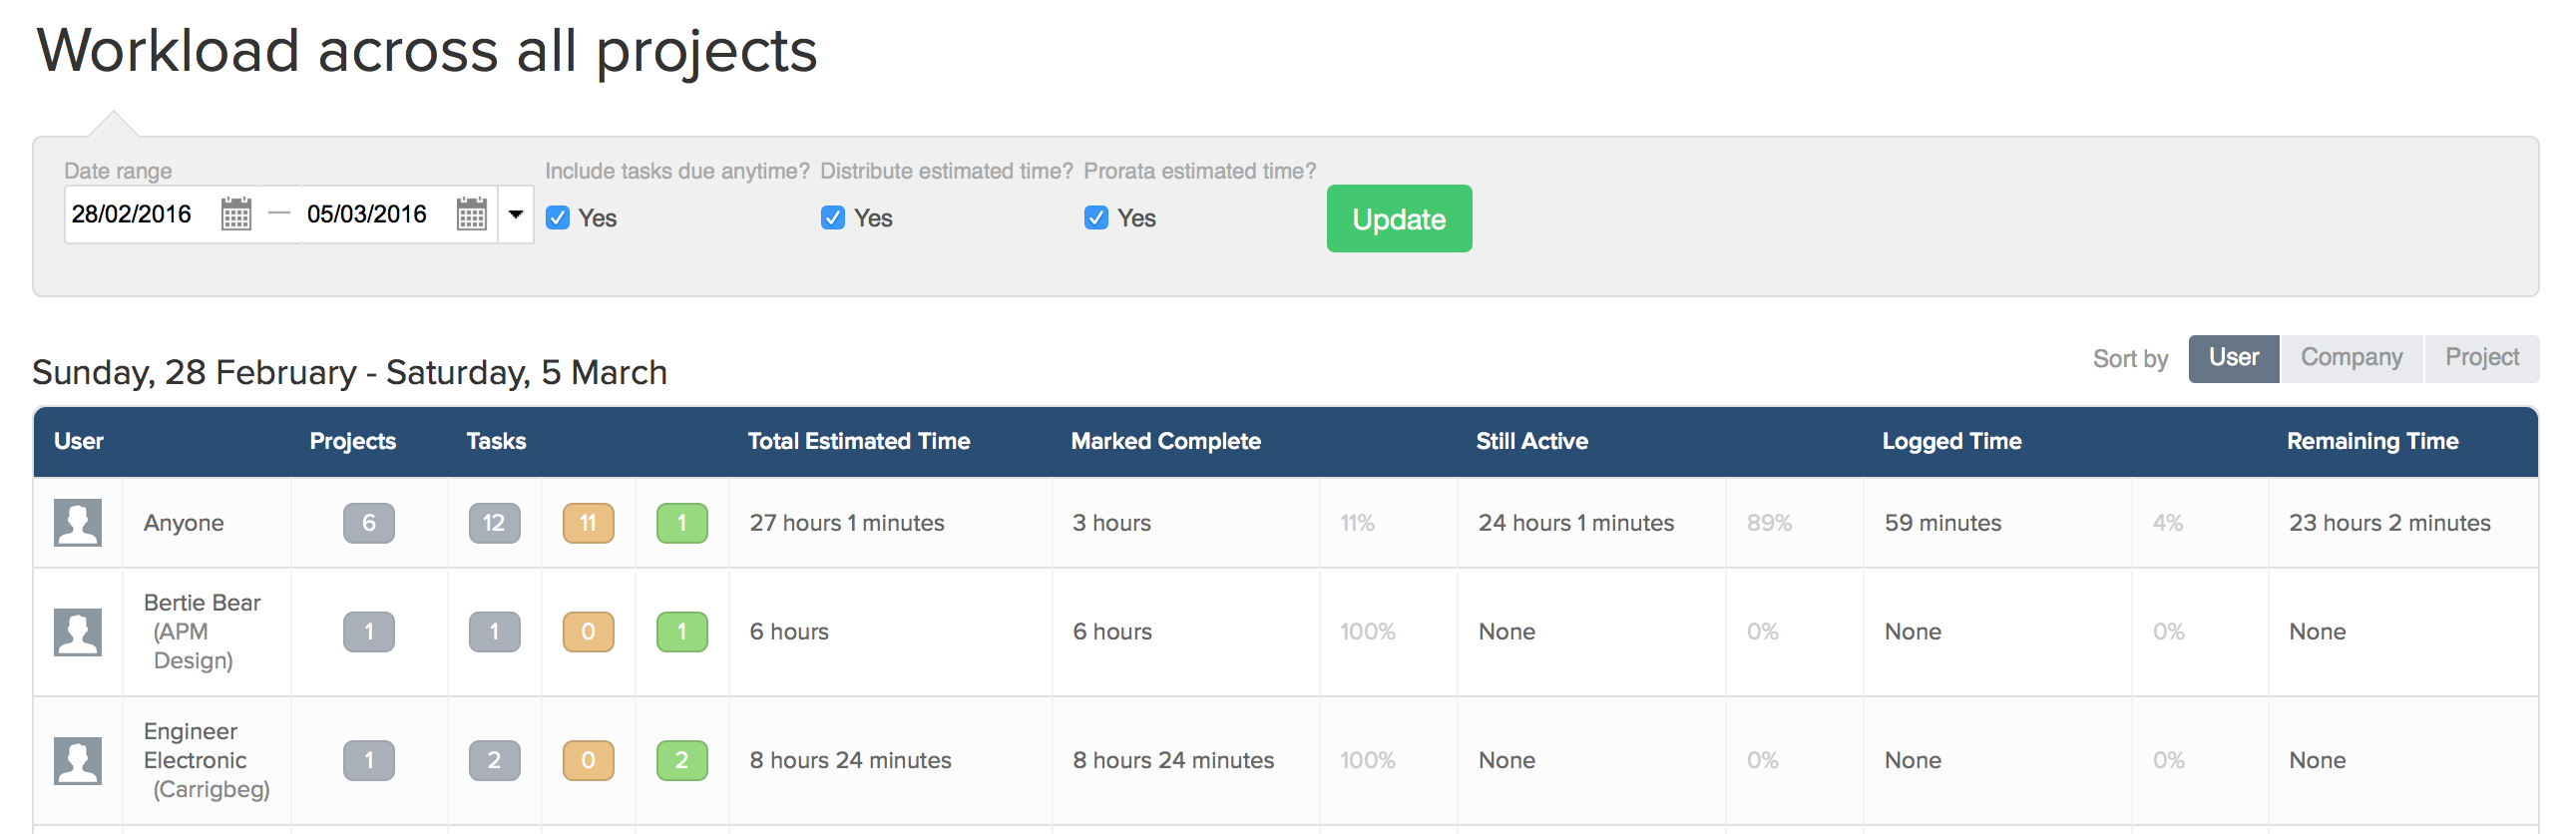 using the workload view teamwork projects helpdocs in the example above workload is being reviewed by user across all projects the results can be grouped by user company or project from the buttons to